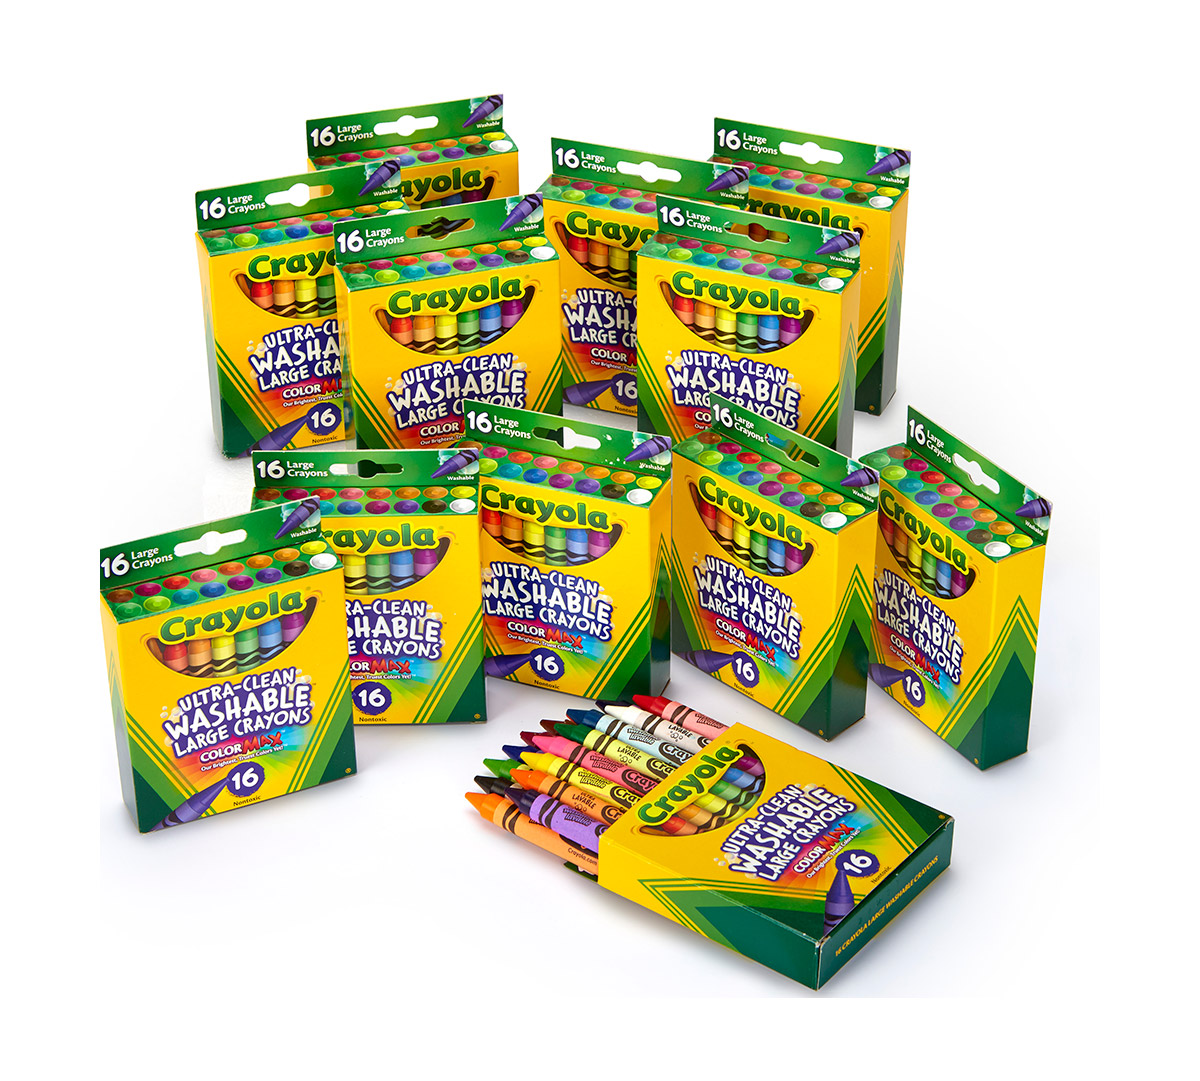 Crayola Ultra-Clean Washable Large Crayons, Bulk Set, 12 Packs of 16 Count